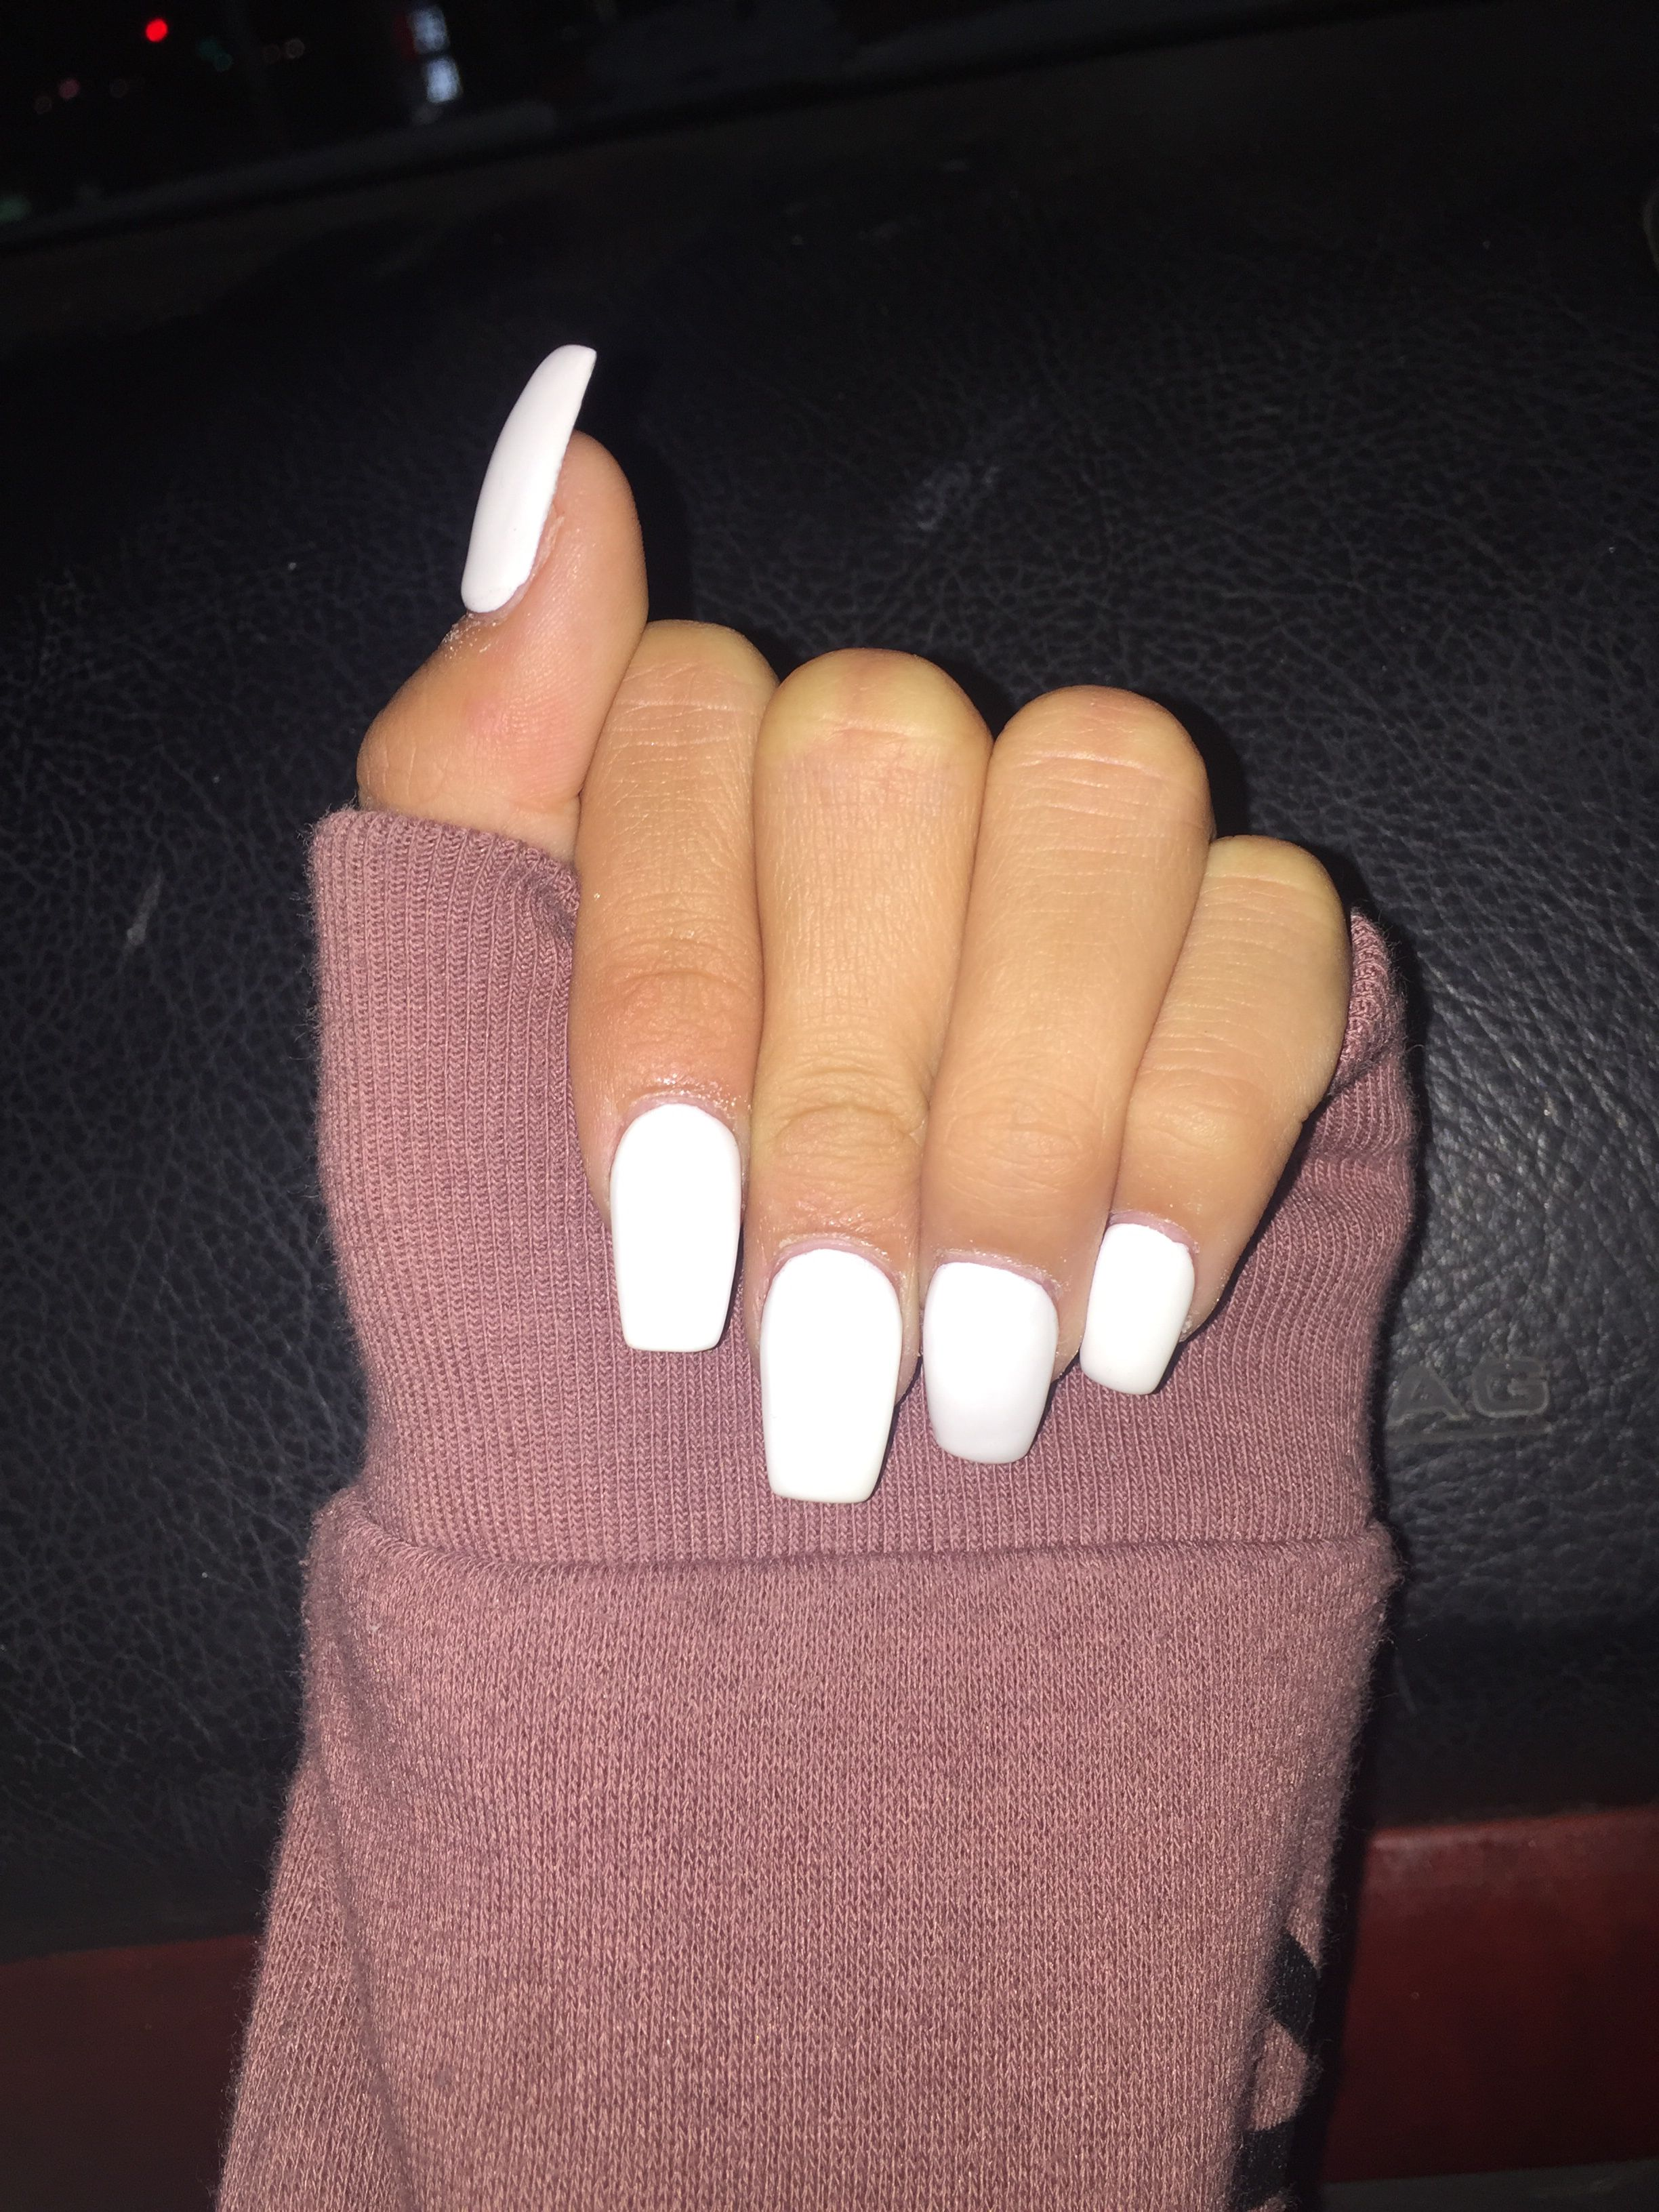 Cute White Acrylics But Asked For Coffin Shaped But They Kinda Looked Square But Still Love White Acrylic Nails Pretty Acrylic Nails Square Acrylic Nails